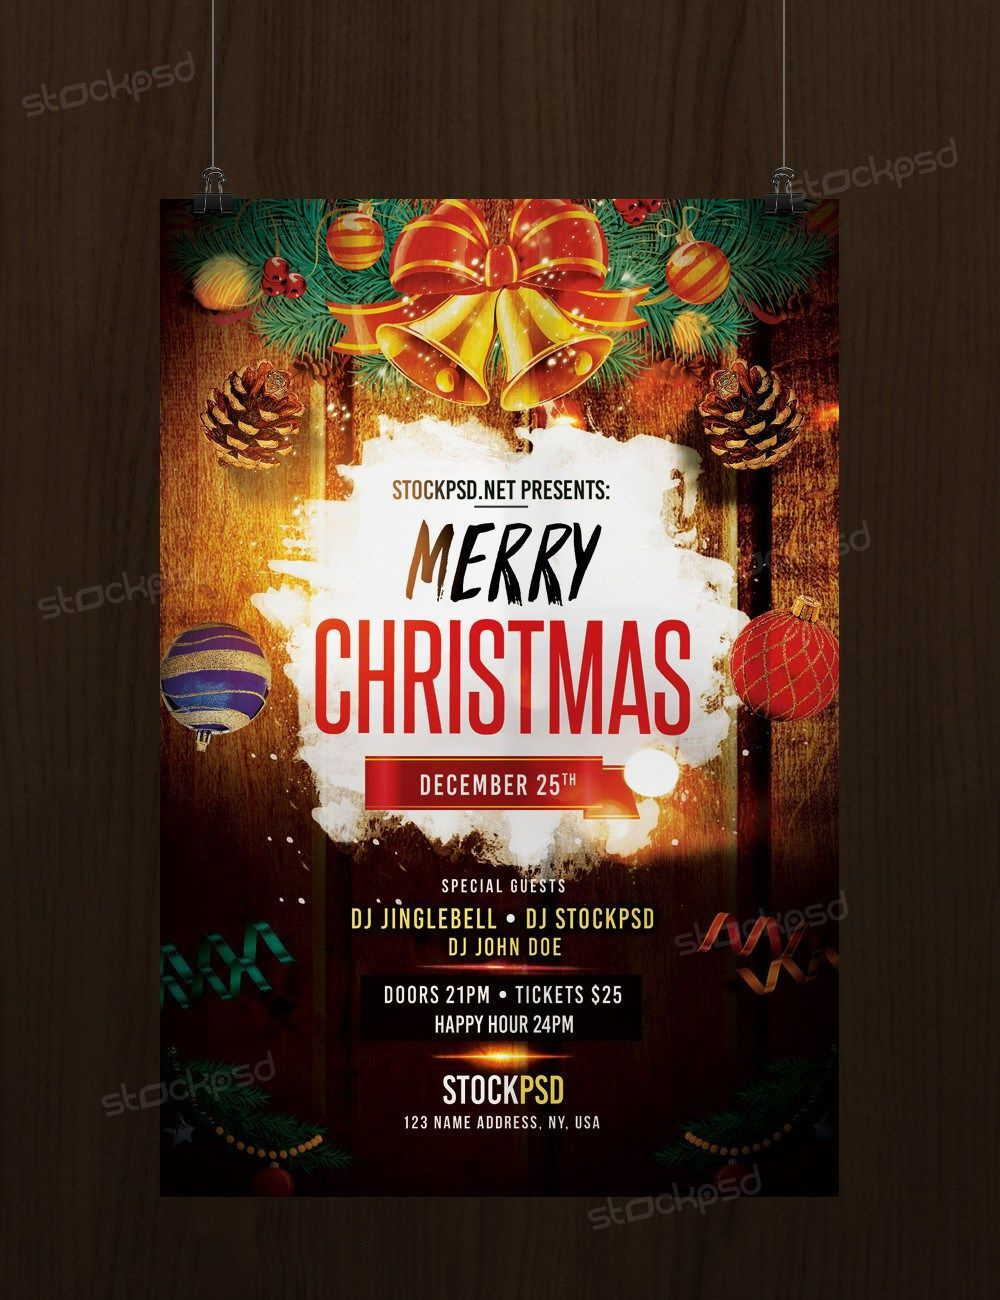 005 Exceptional Christma Flyer Template Free Idea  Party Invitation Psd DownloadFull